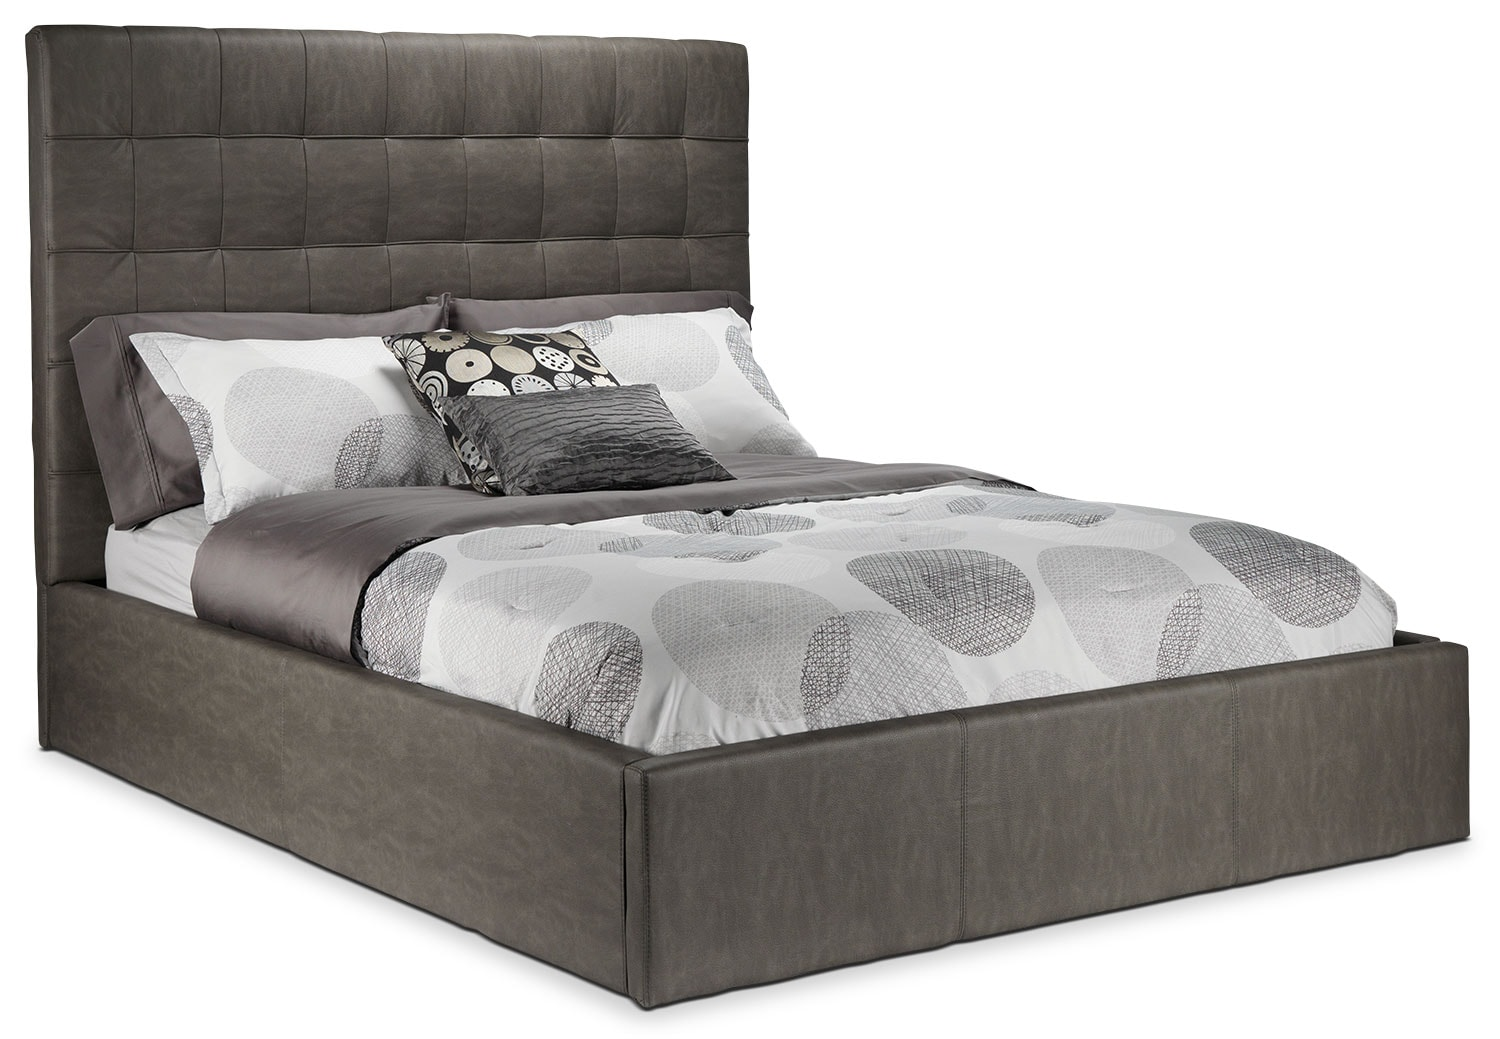 Franklin King Bed - Taupe